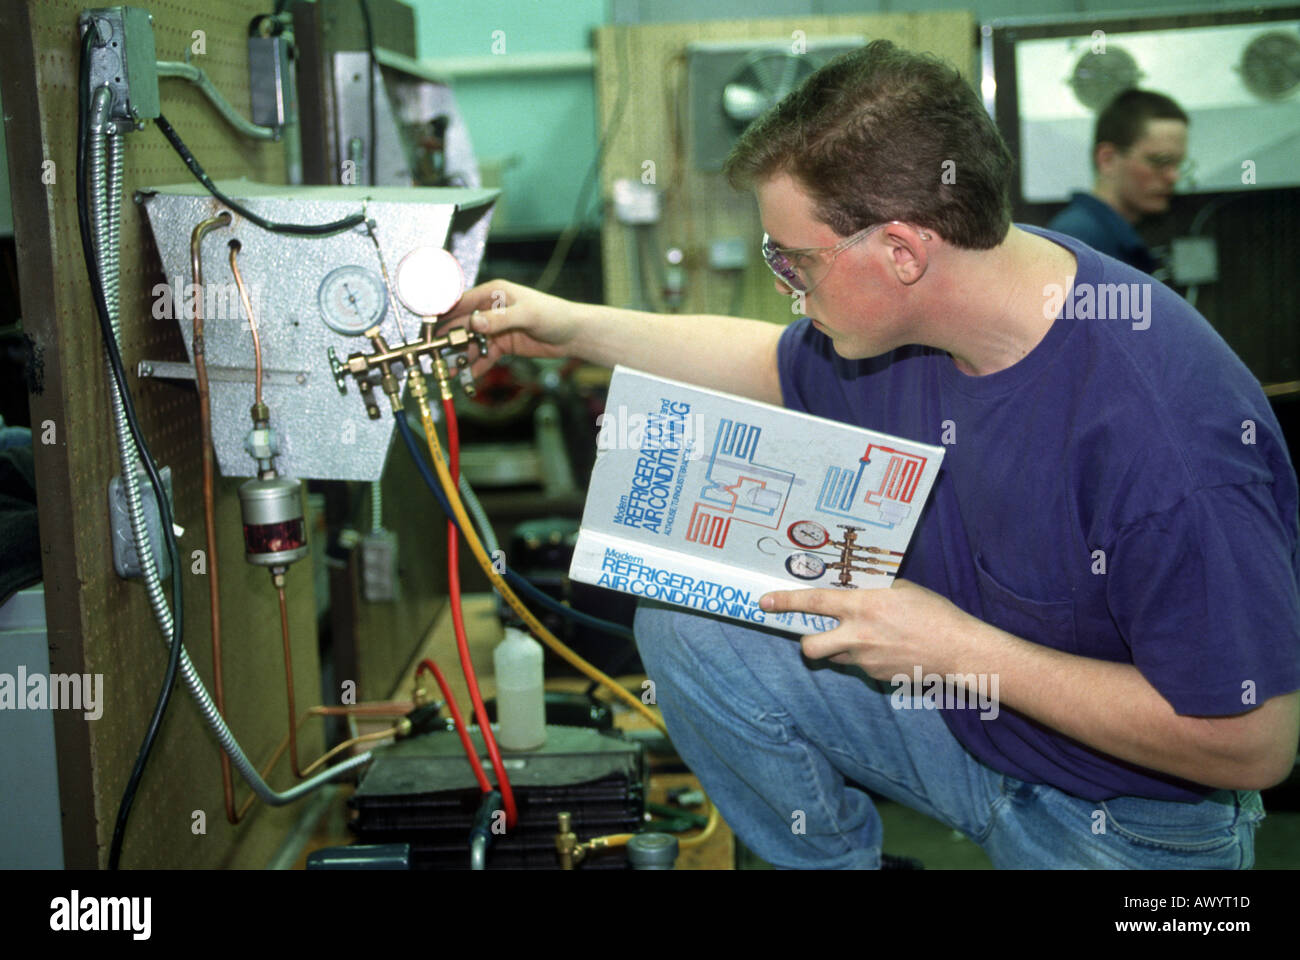 Air Conditioning Service Stock Photos Electrical Engineering In Refrigeration And Male Student Learns Repair Image